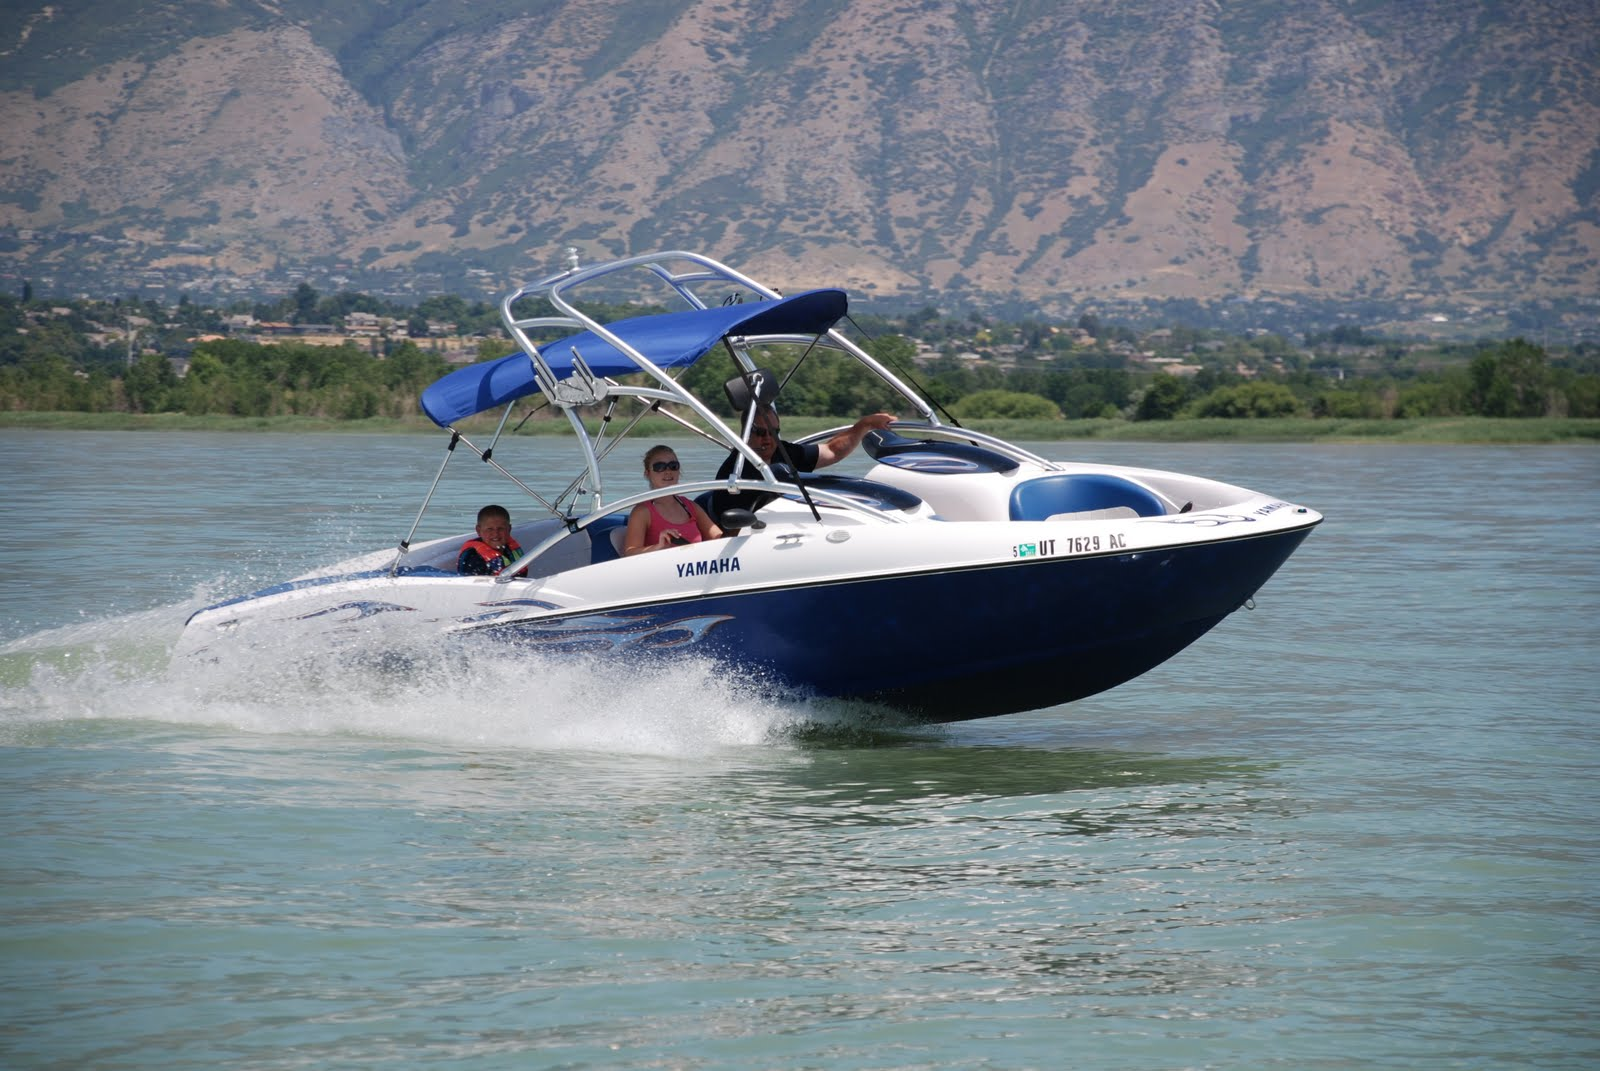 New Utah Boat Al Added To The Line Up Yamaha Ls 2000 Wakeboat Seats 7 8 People Wakeboard Tower Racks Jet Propelled No Prop